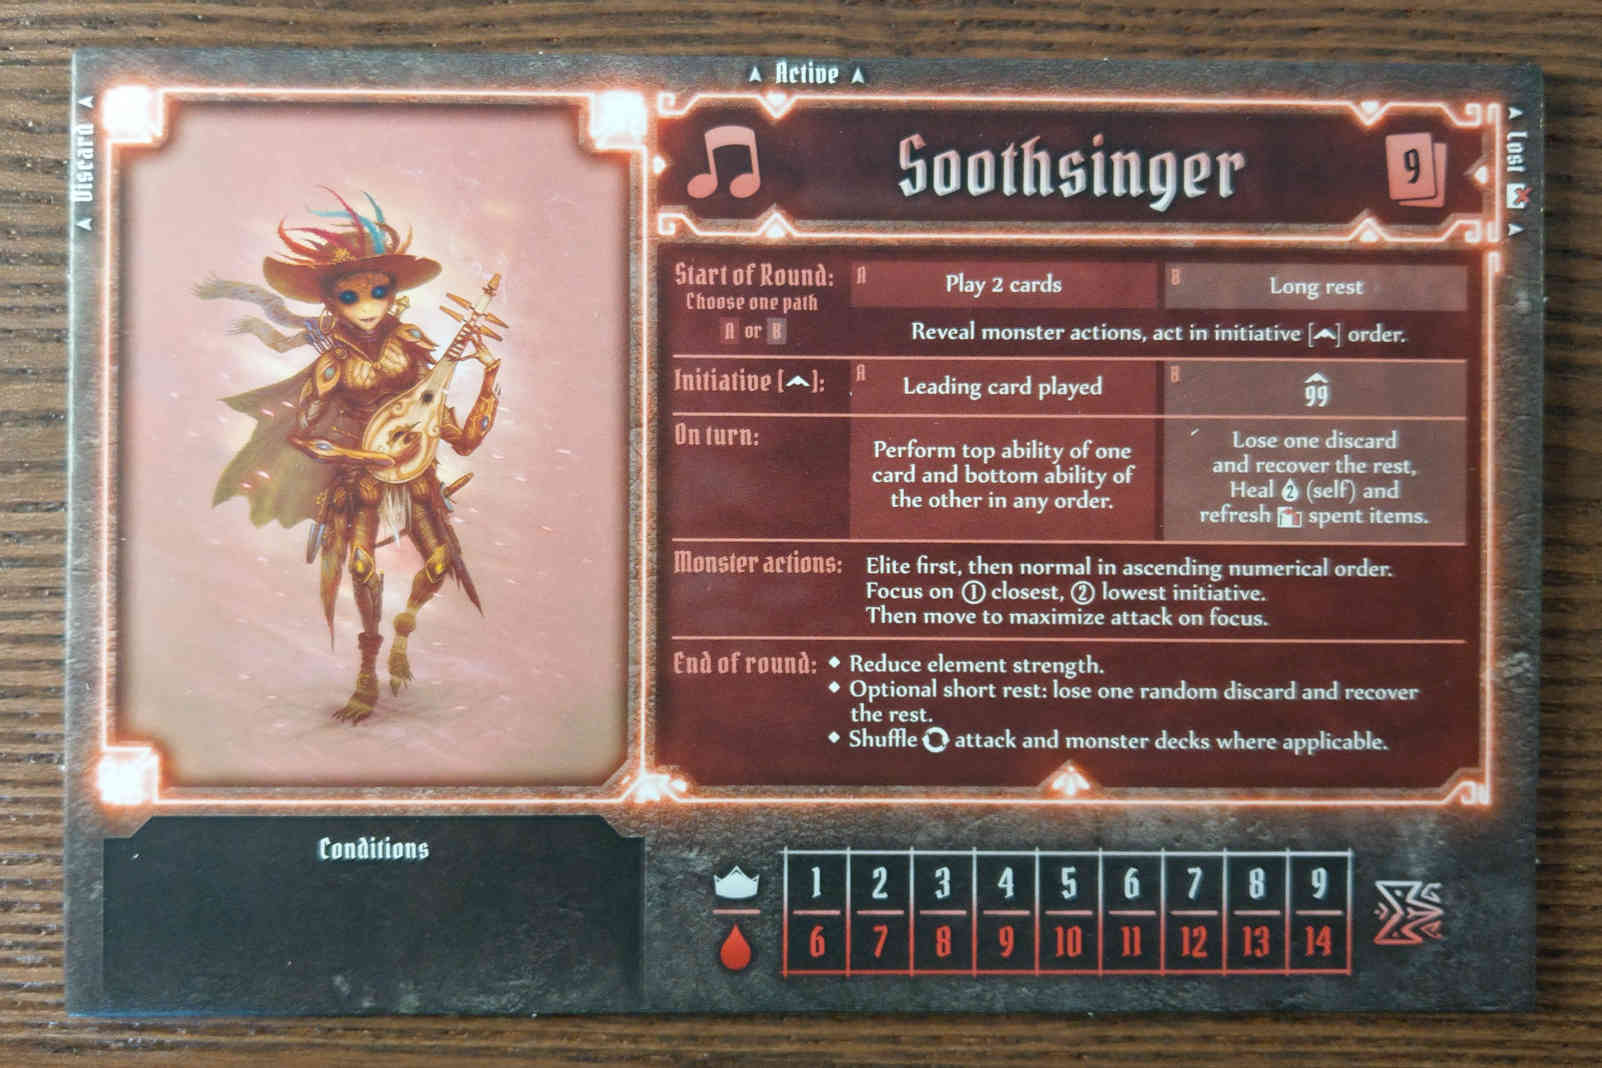 Soothsinger class board - levels and hit points